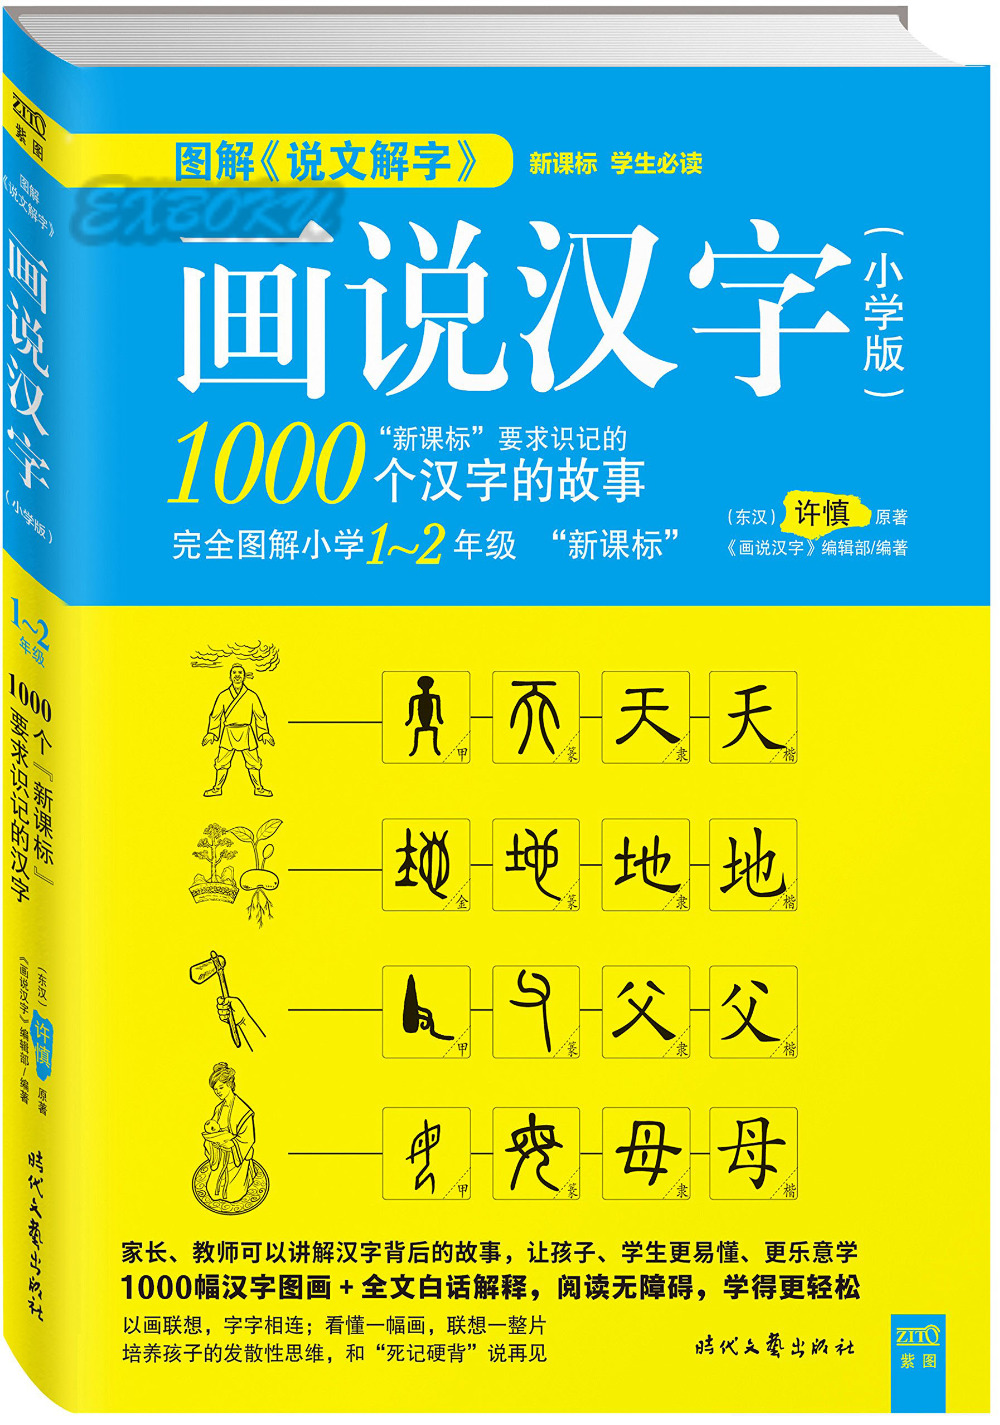 Chinese character books for beginners, Easy Learning 1000 Chinese character with graphics pictures нук мини столовый прибор пластиковый easy learning 2 предмета